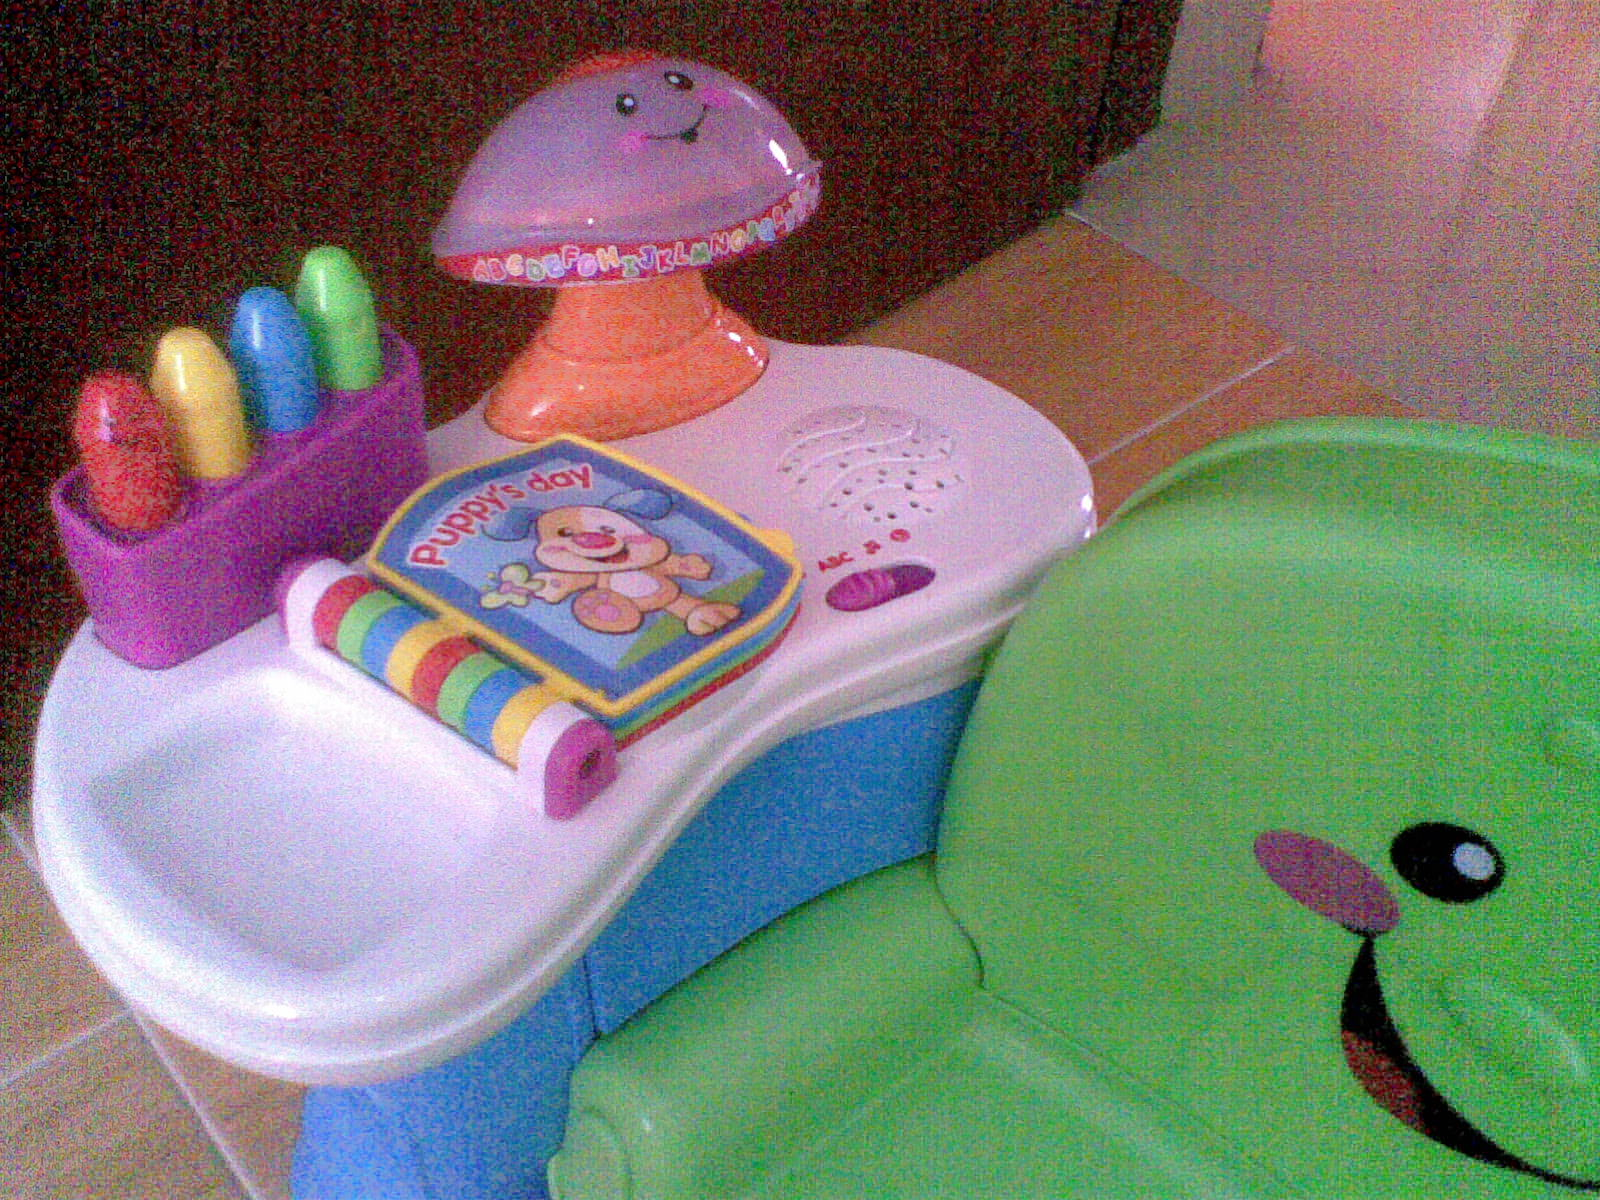 Fisher Price Sit And Play Chair Design Presentation Special Toys Shop Laugh Learn Song Story